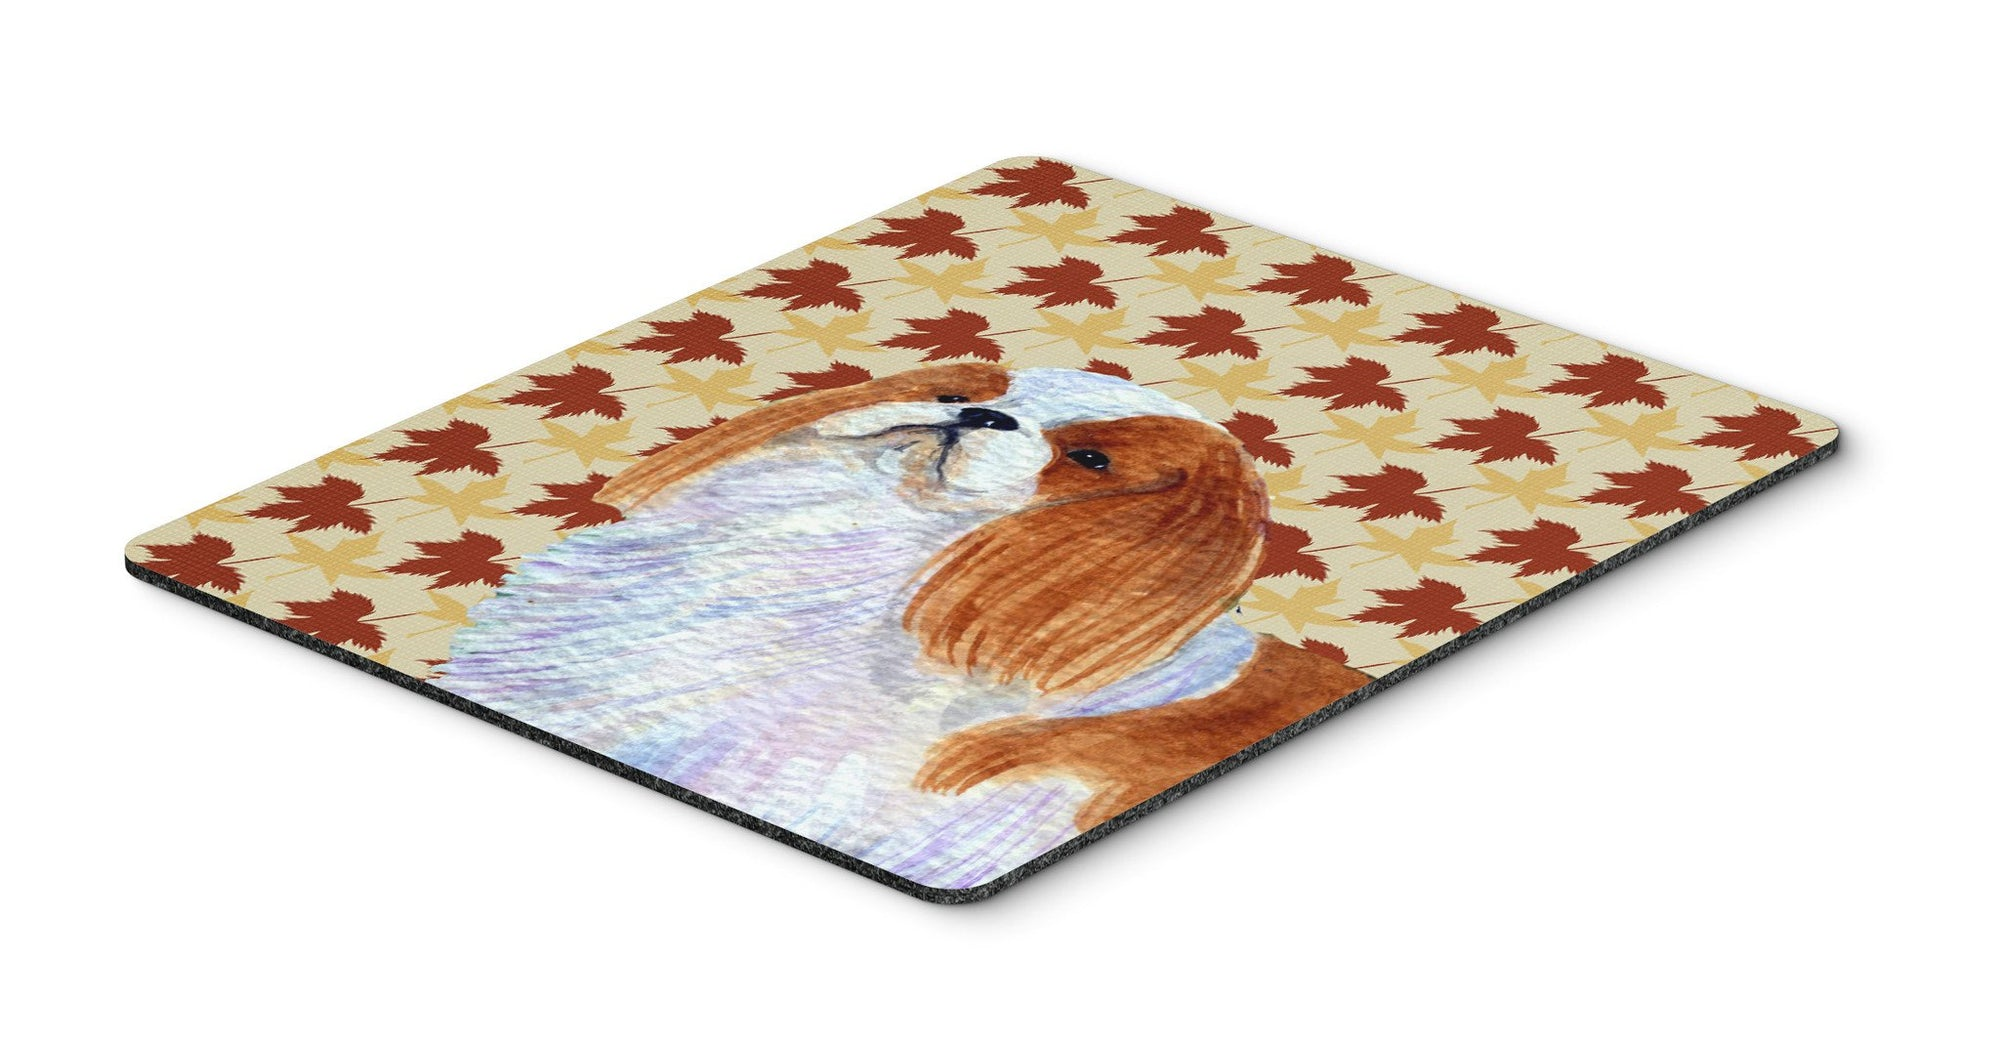 English Toy Spaniel Fall Leaves Portrait Mouse Pad, Hot Pad or Trivet by Caroline's Treasures